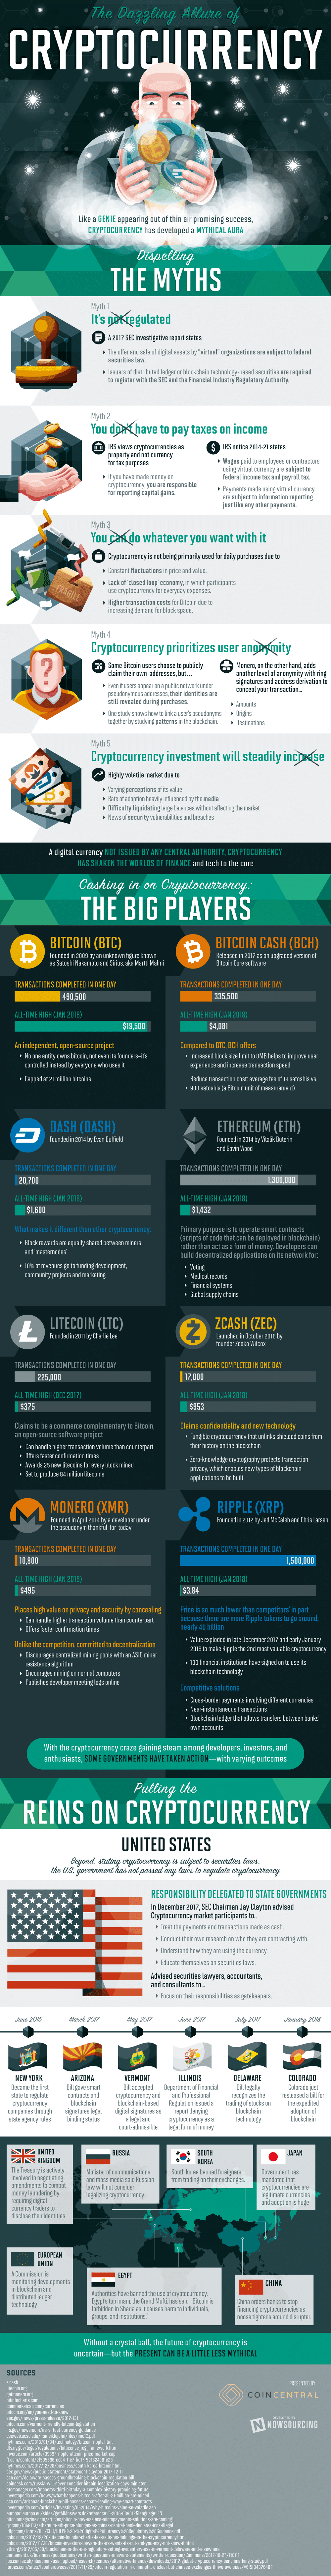 Is Cryptocurrency A Dangerous Bet For Your Business? [Infographic]